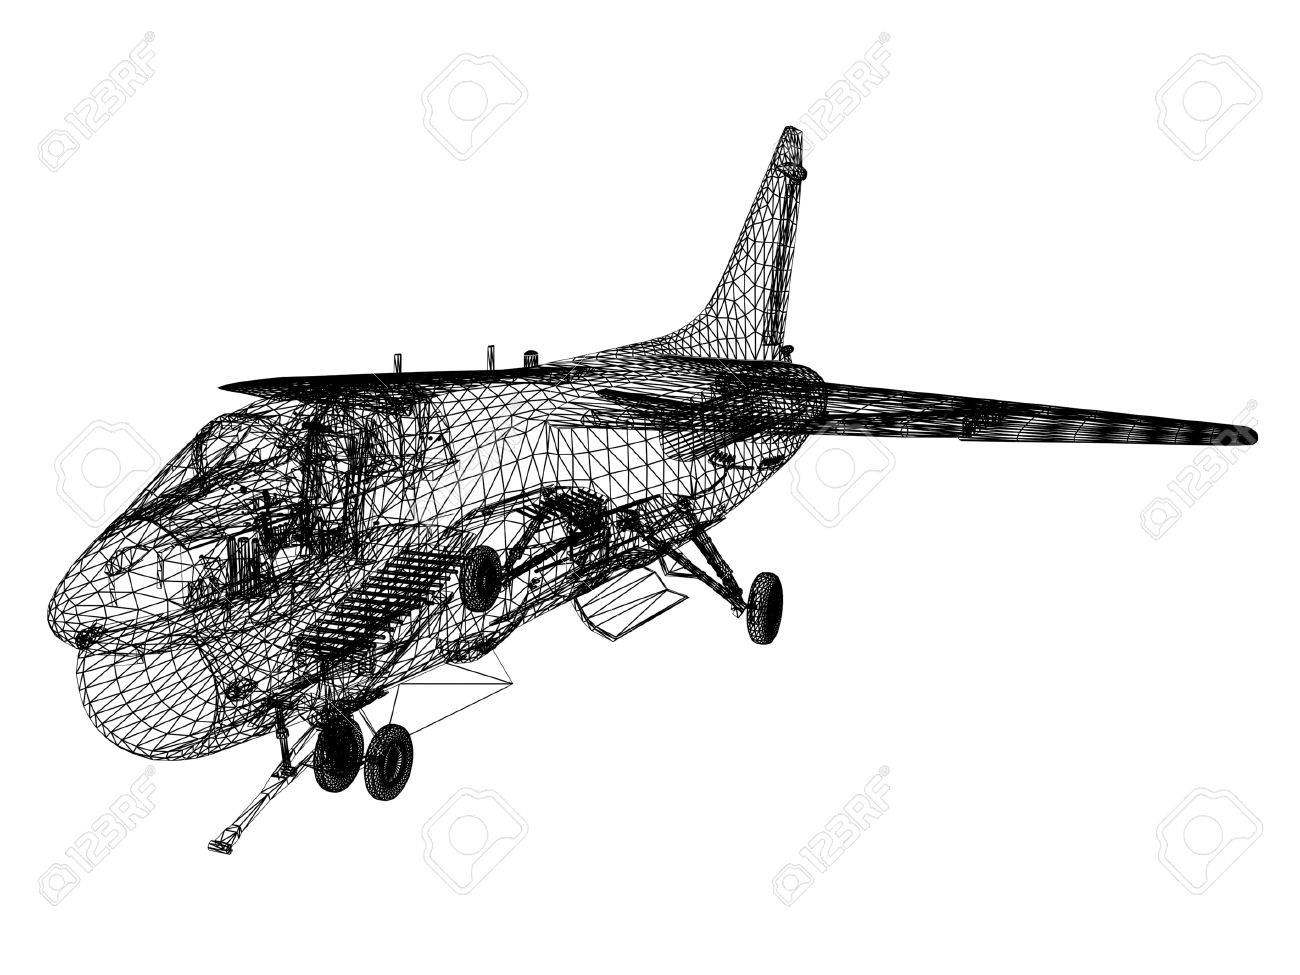 3d Wire Frame Sketch Of F-16 Hornet Stock Photo, Picture And Royalty ...